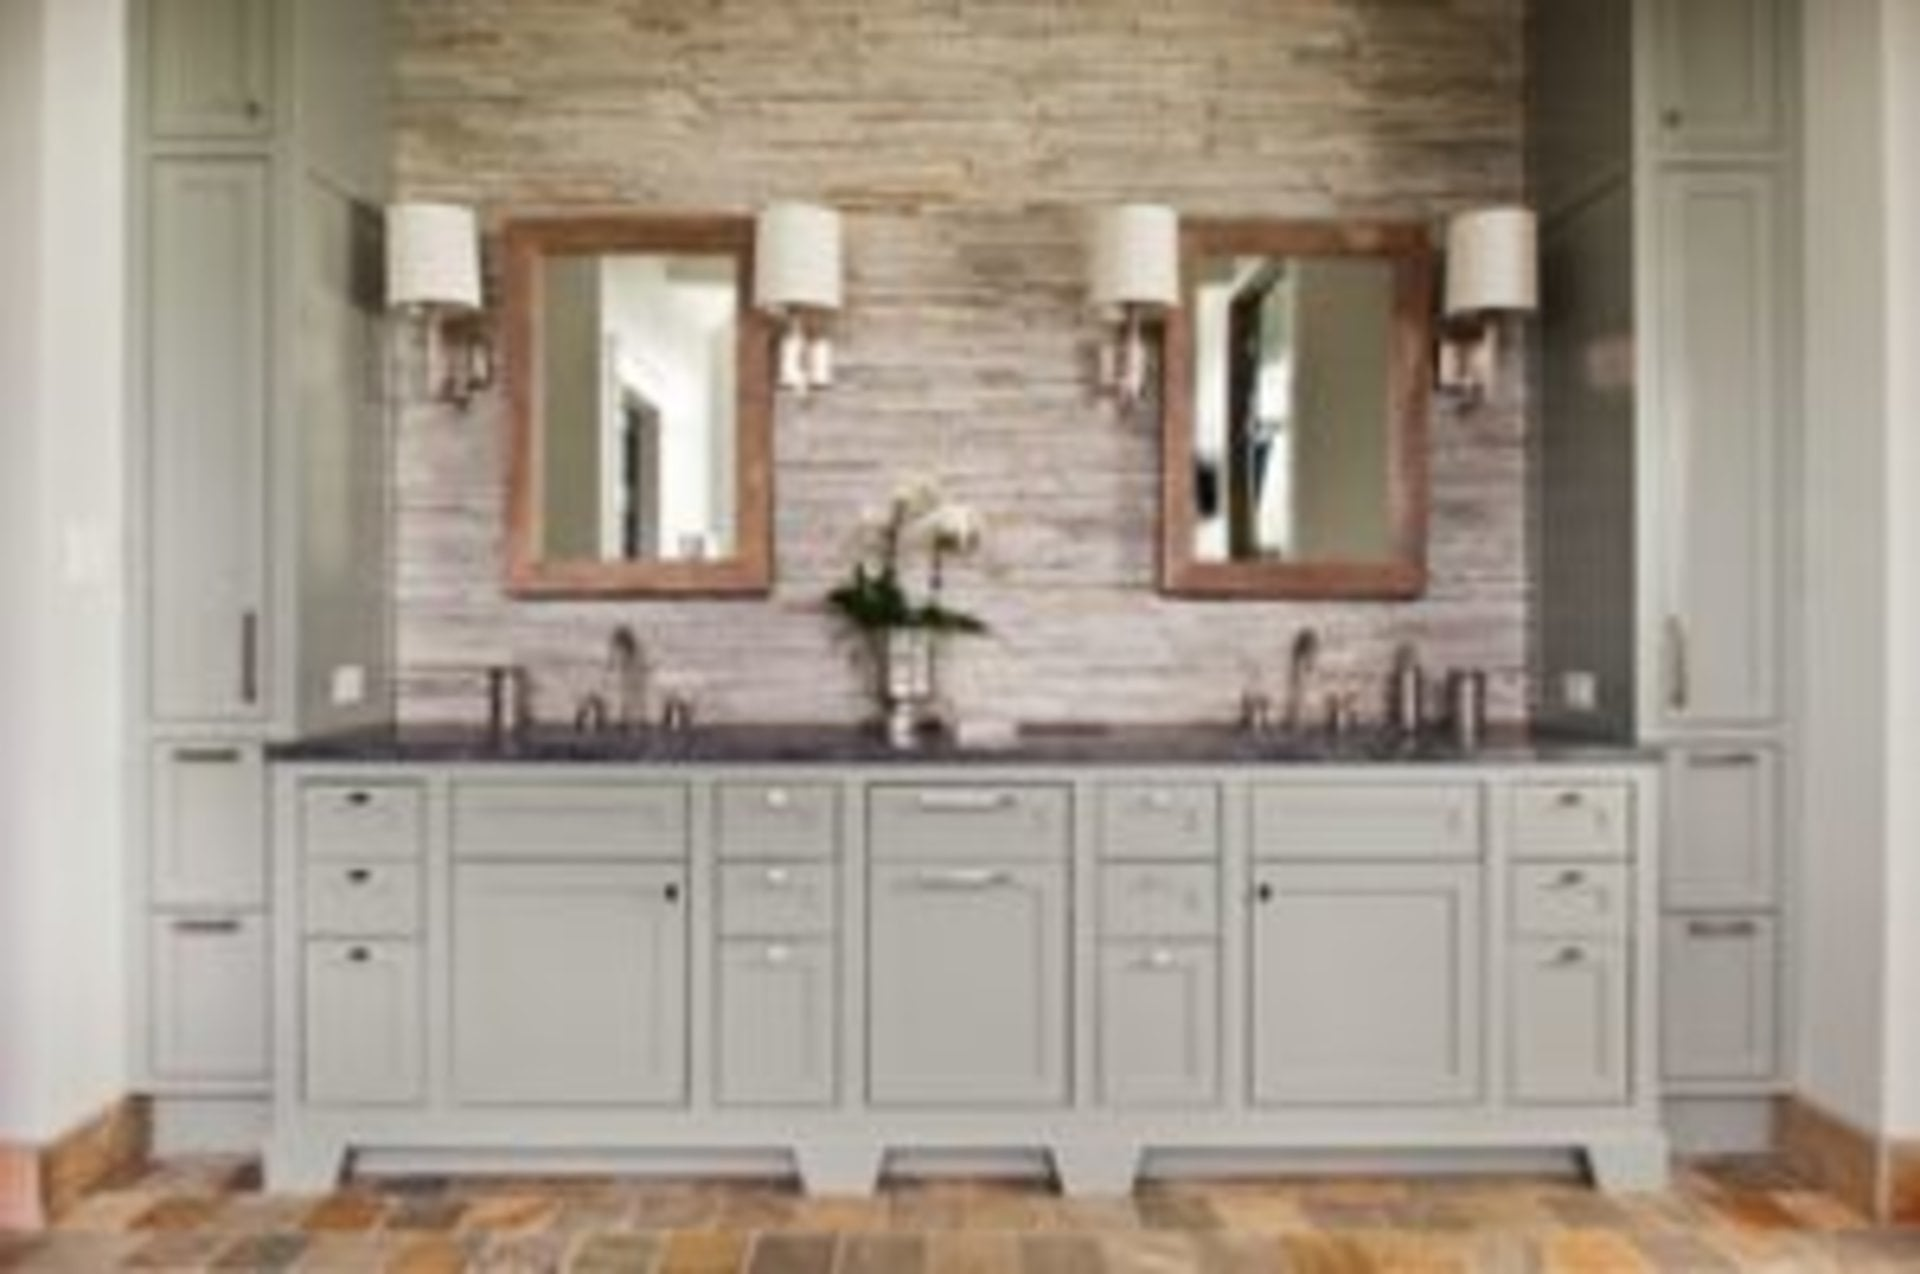 Shaker Style in the Home - Master bathroom vanity with a modern twist